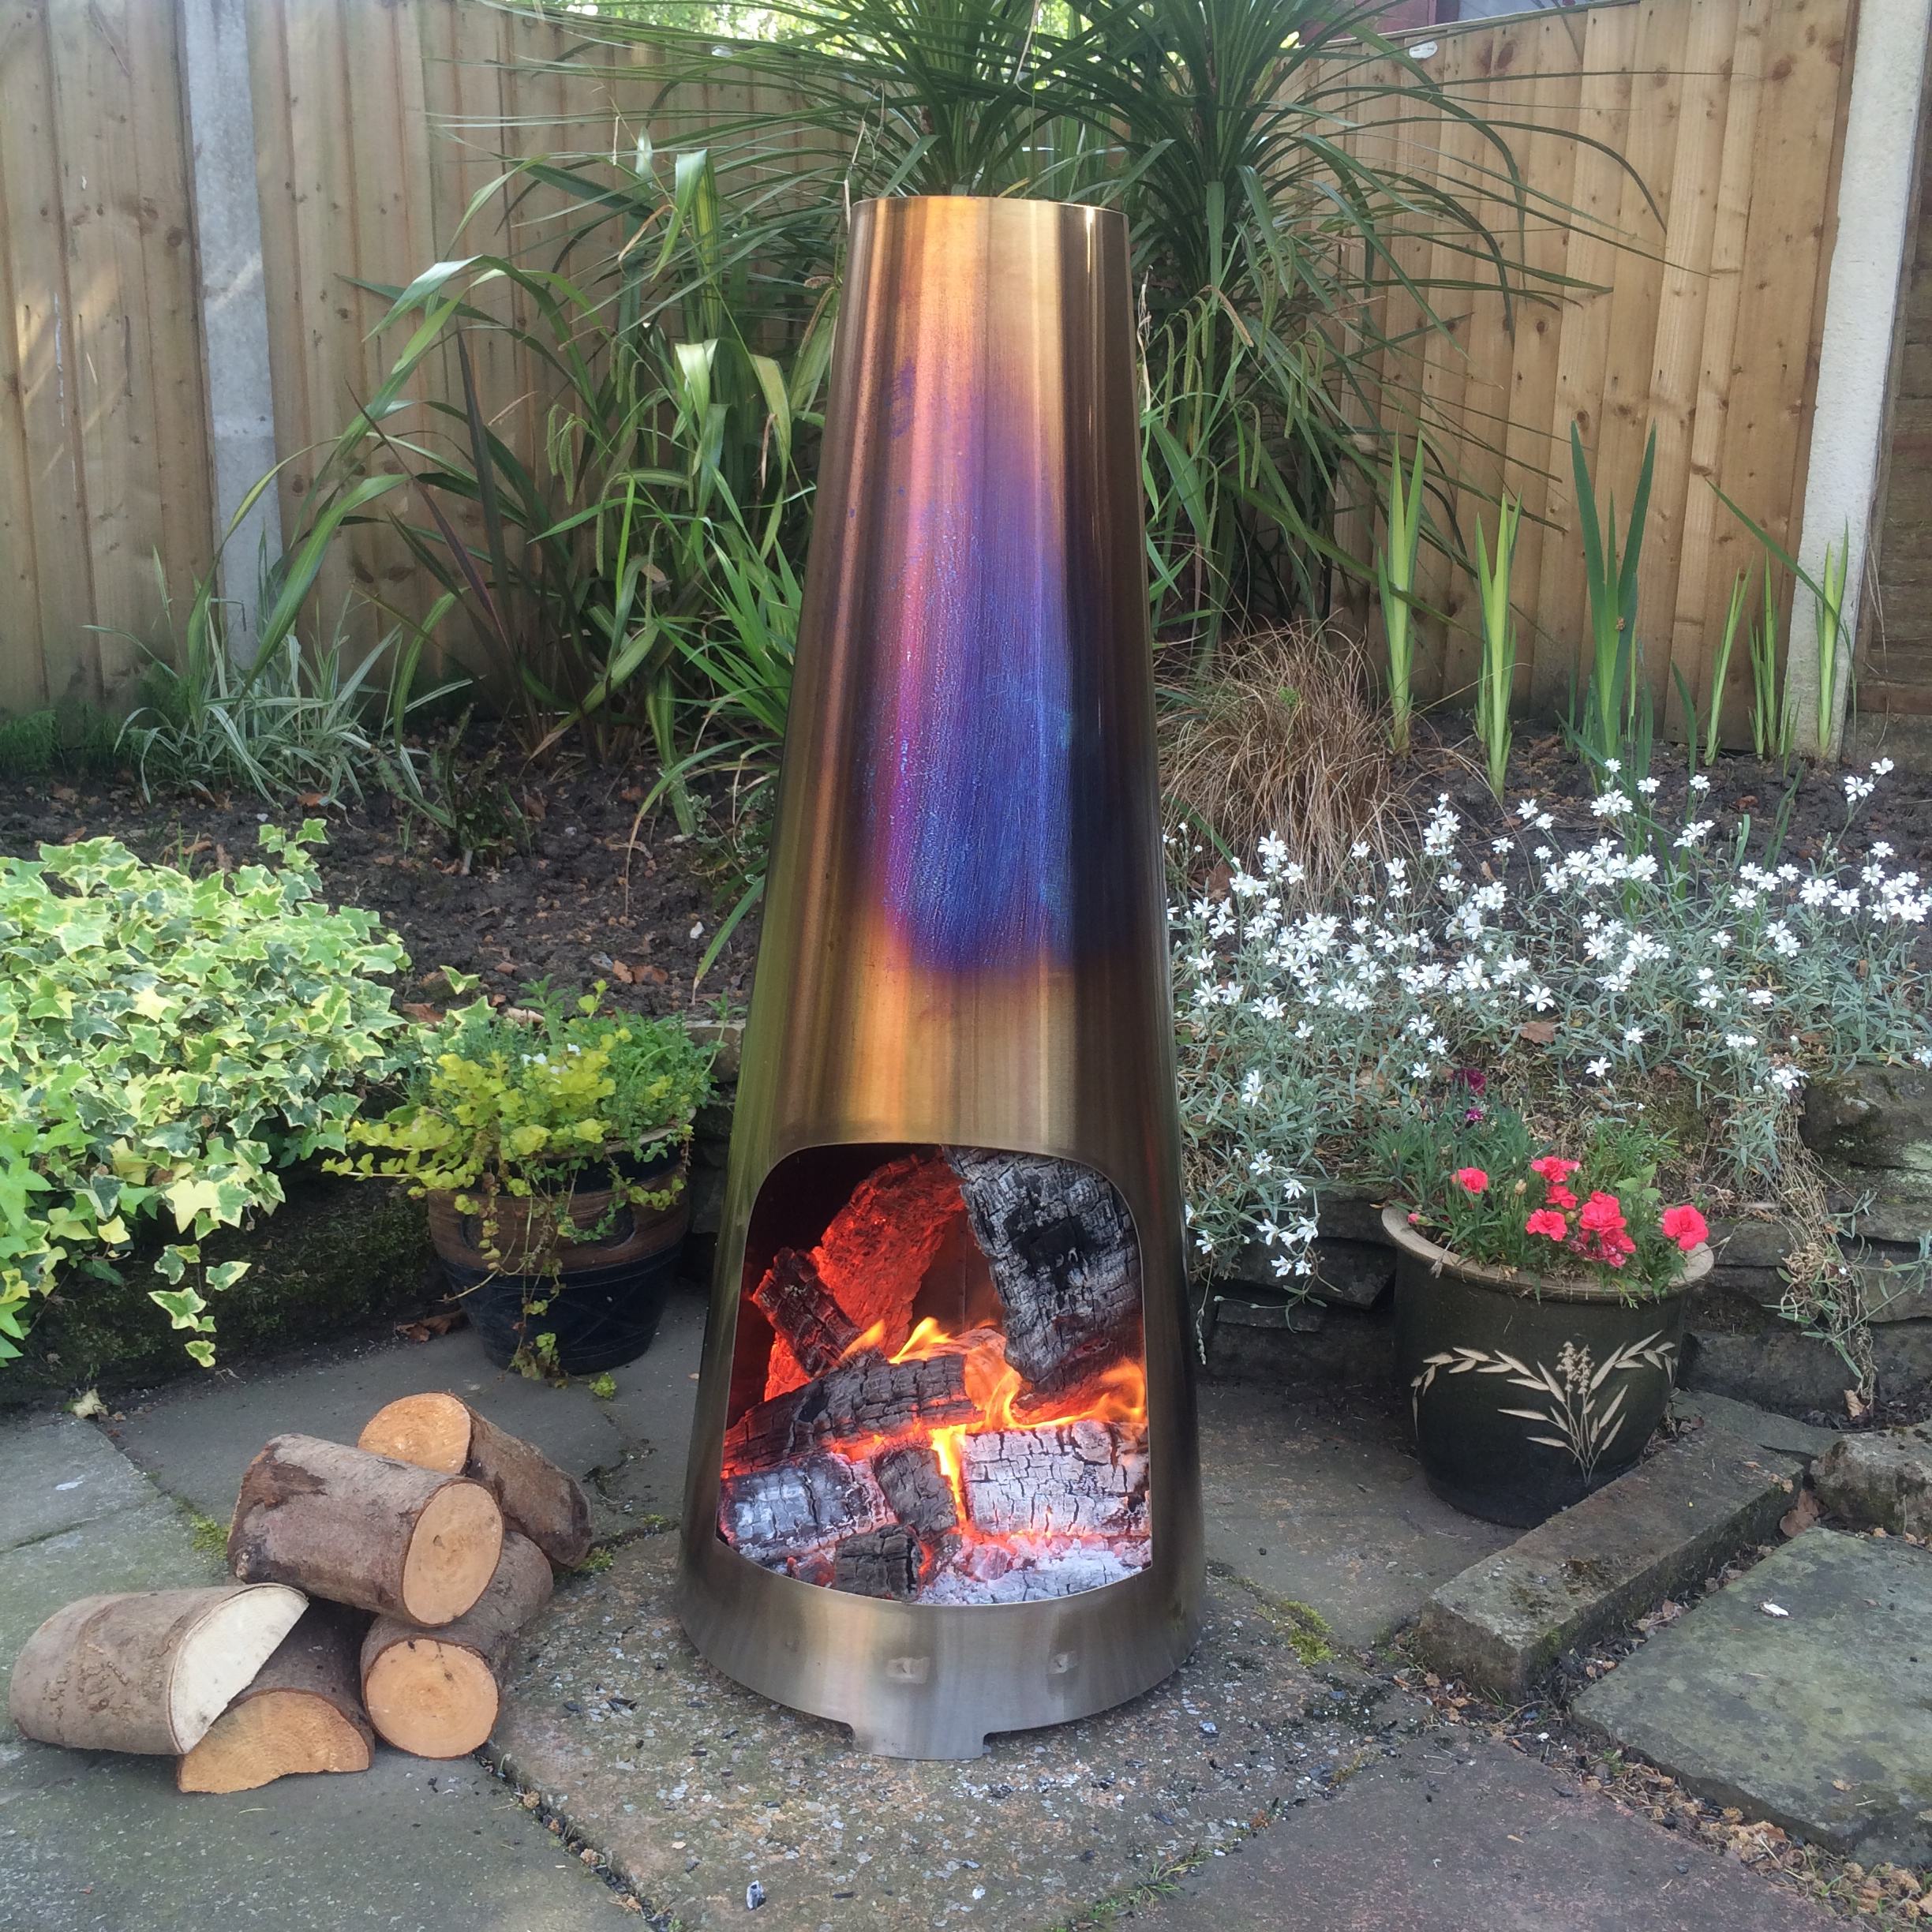 made o' metal stainless steel cm garden patio cone chimenea log  - made o' metal stainless steel cm garden patio cone chimenea log burnerheater